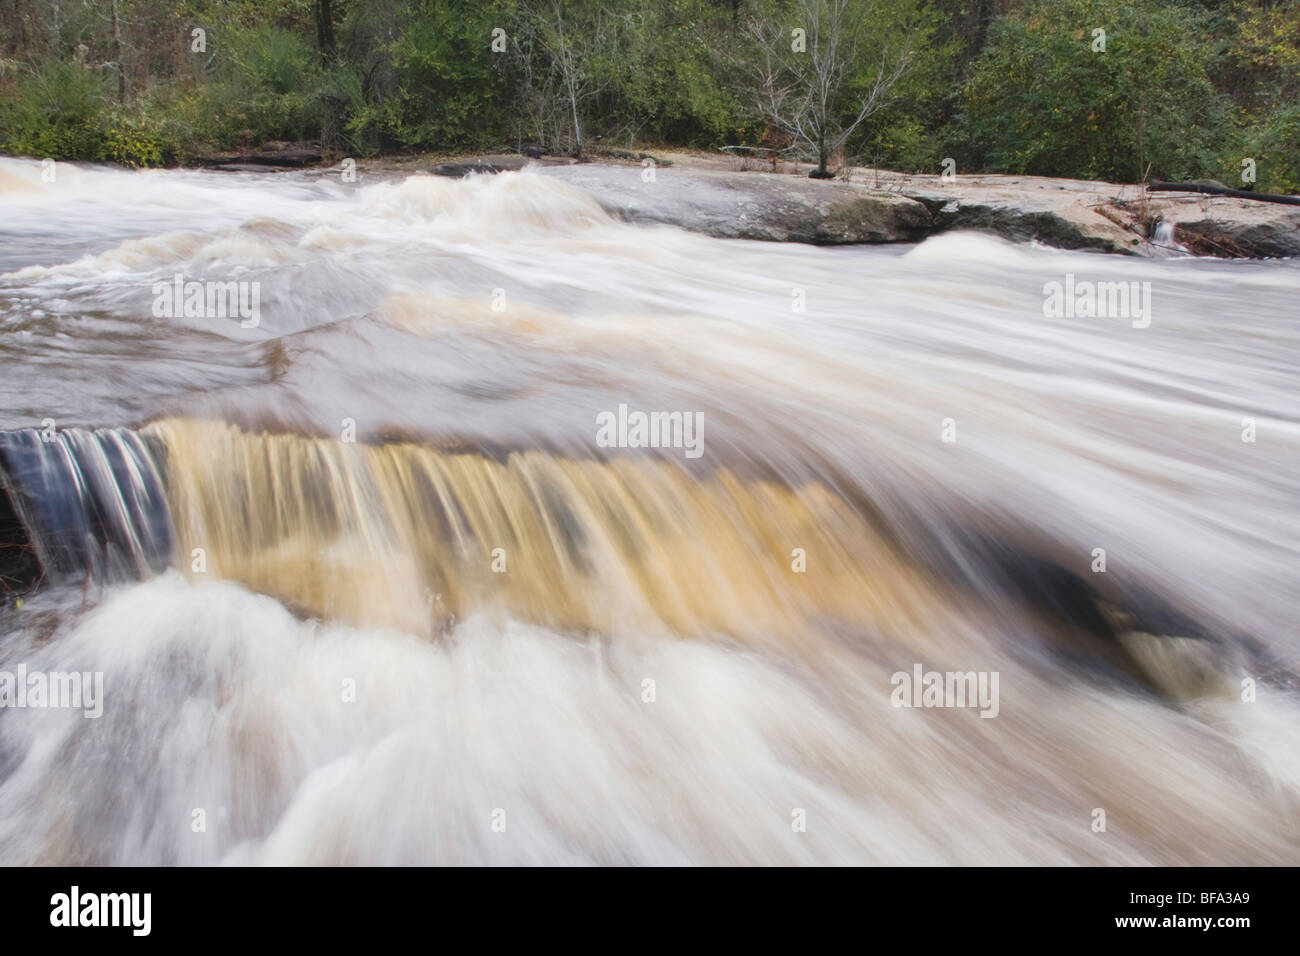 Little River flowing through Rolesville Millpond Natural Area, Rolesville, North Carolina, USA - Stock Image